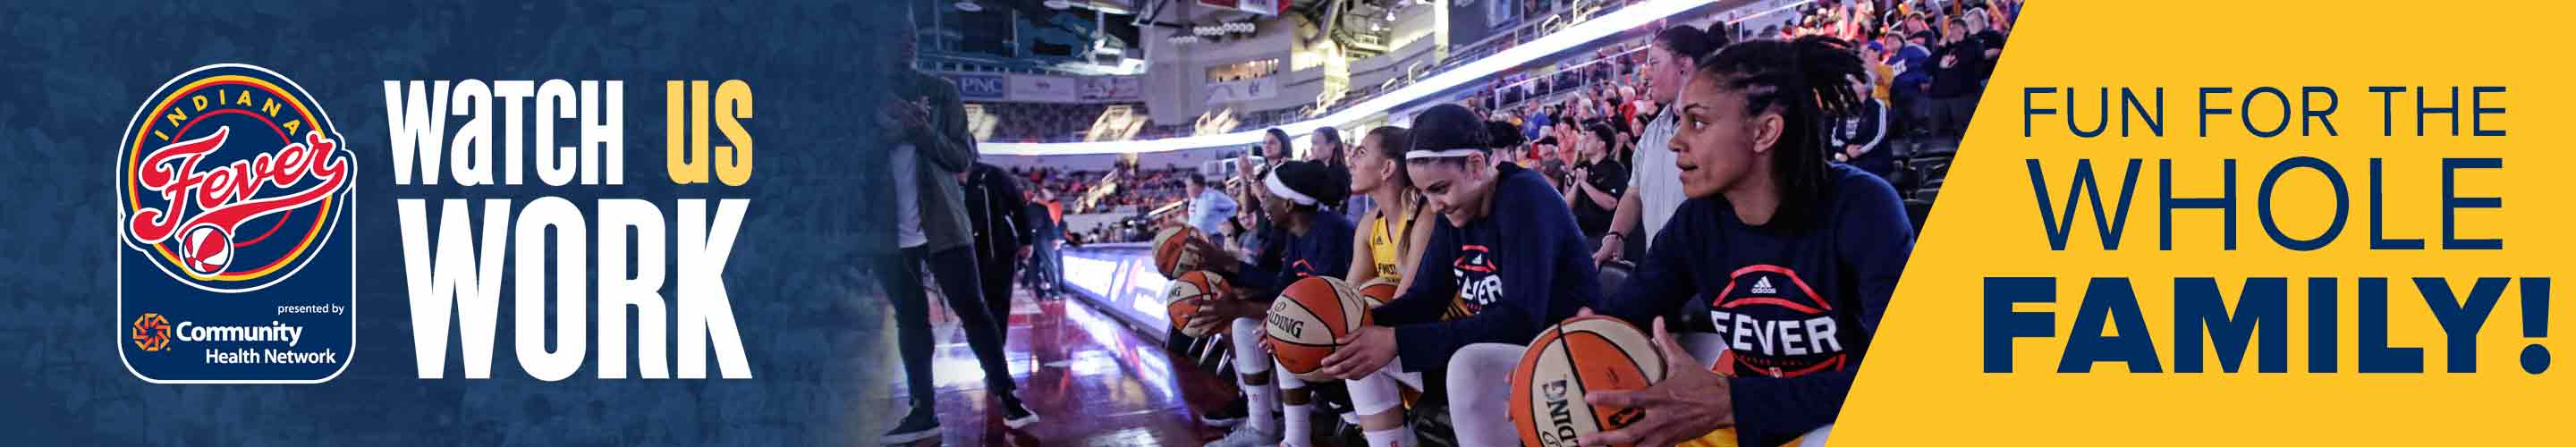 2017 Indiana Fever Ticket Central